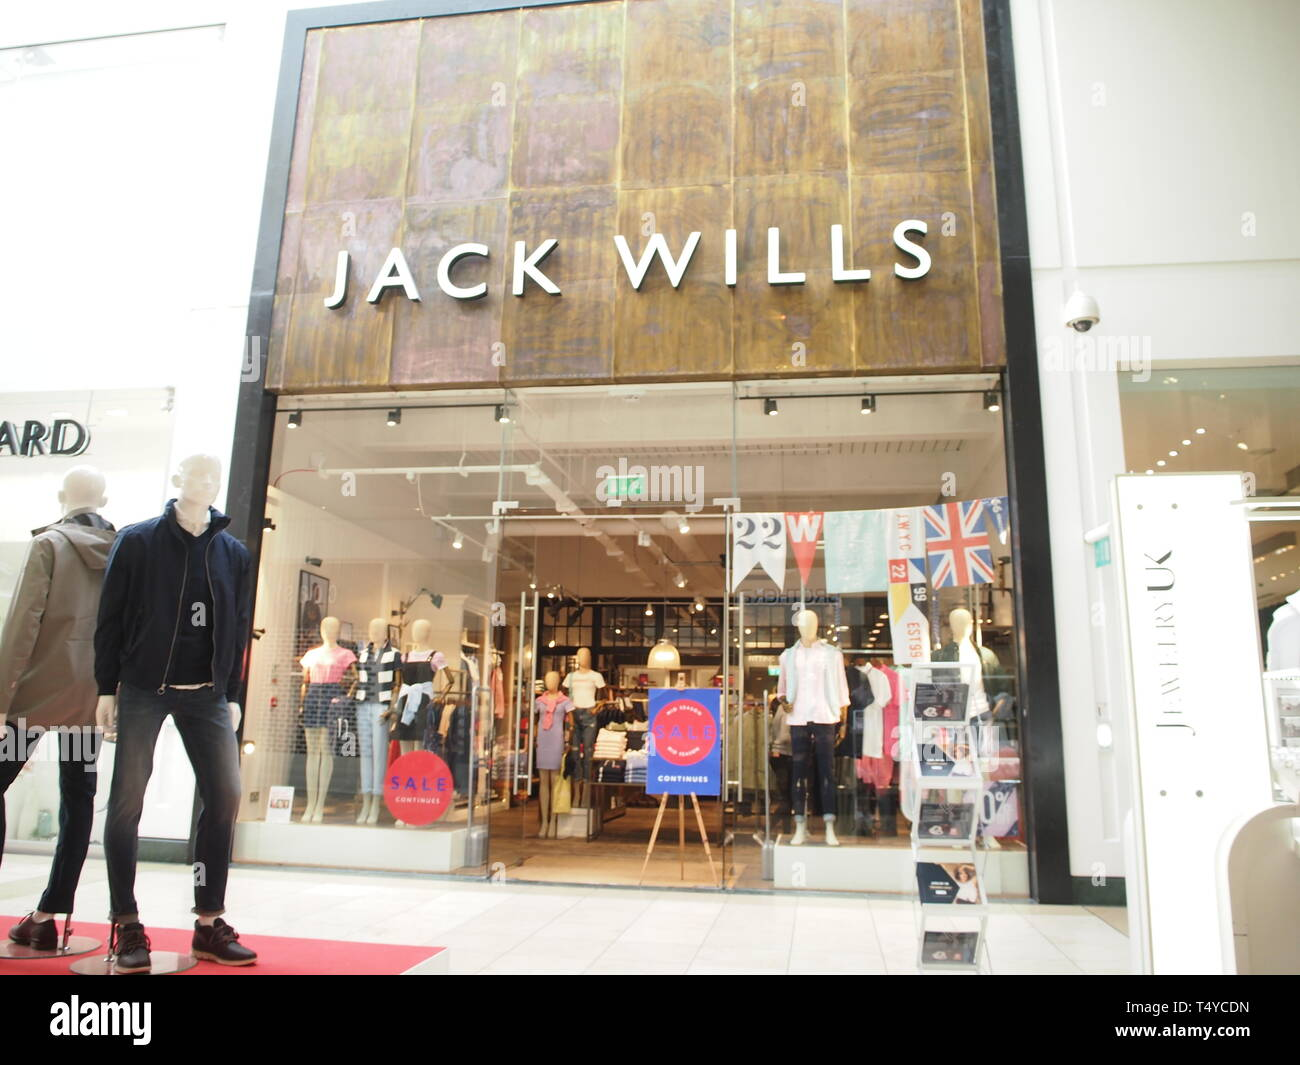 Jack Wills store, Intu Shopping Centre in Milton Keynes - Stock Image